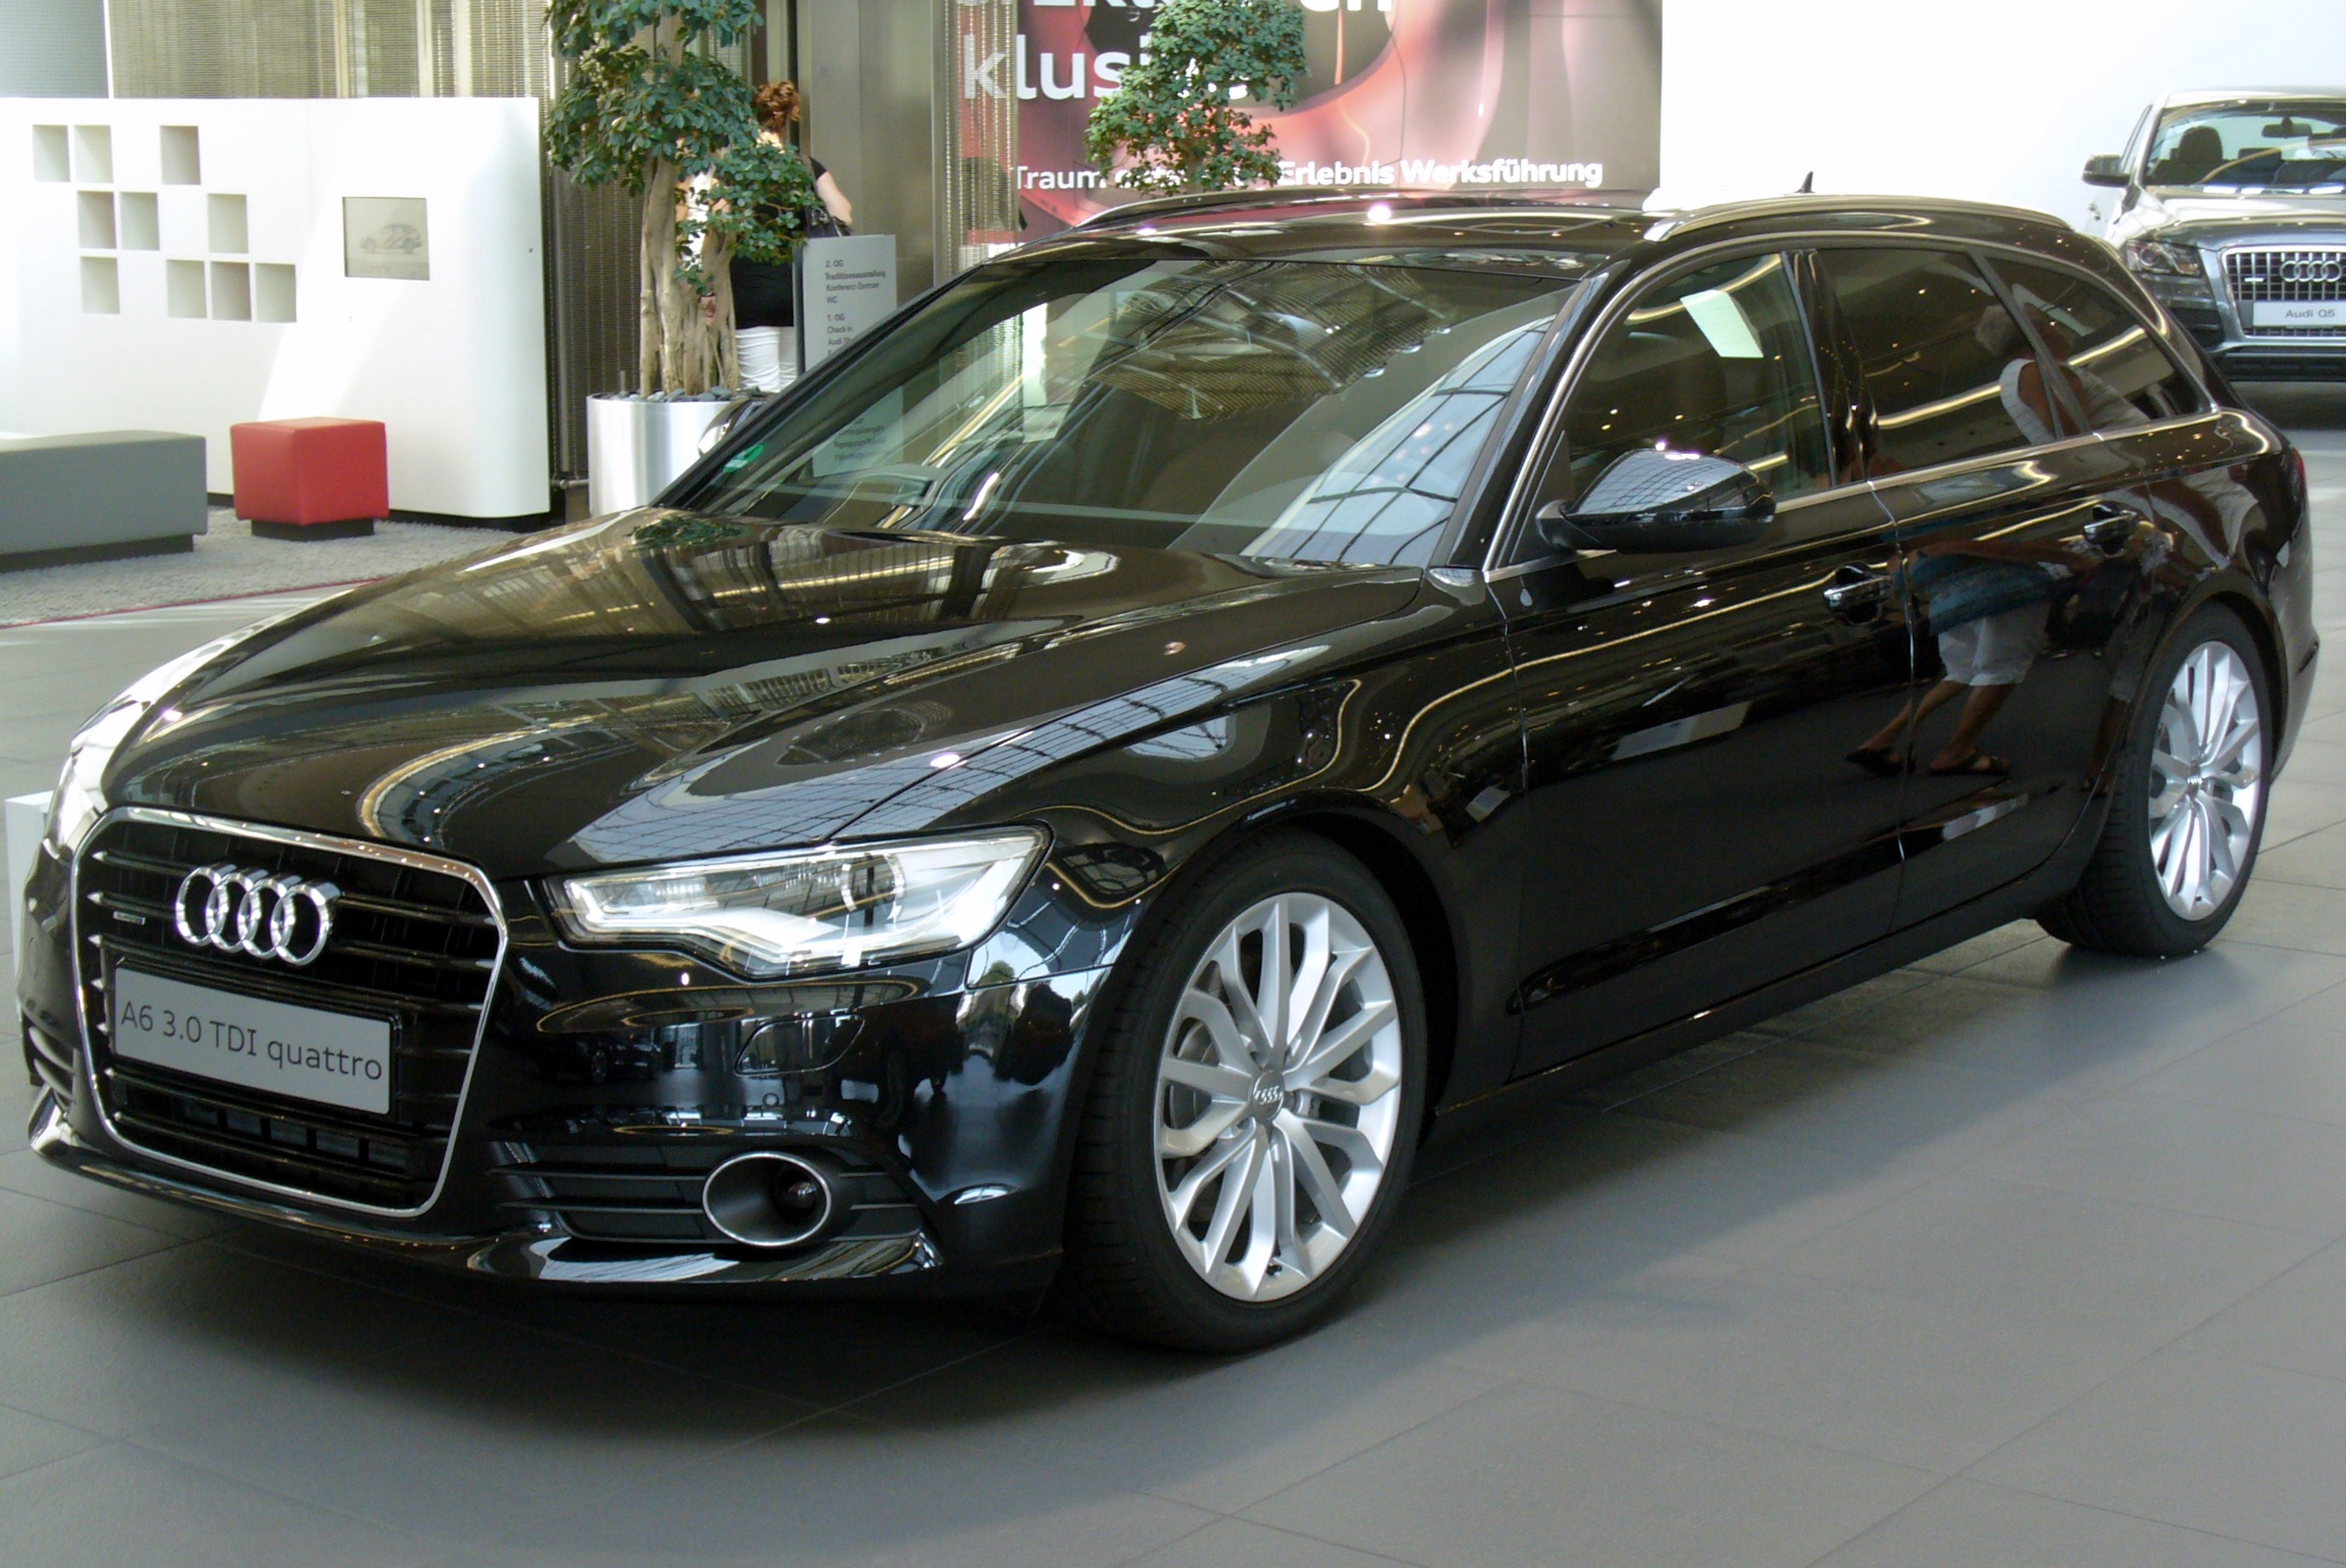 2011 audi a6 avant 3 0 tdi quattro s tronic related infomation specifications weili automotive. Black Bedroom Furniture Sets. Home Design Ideas